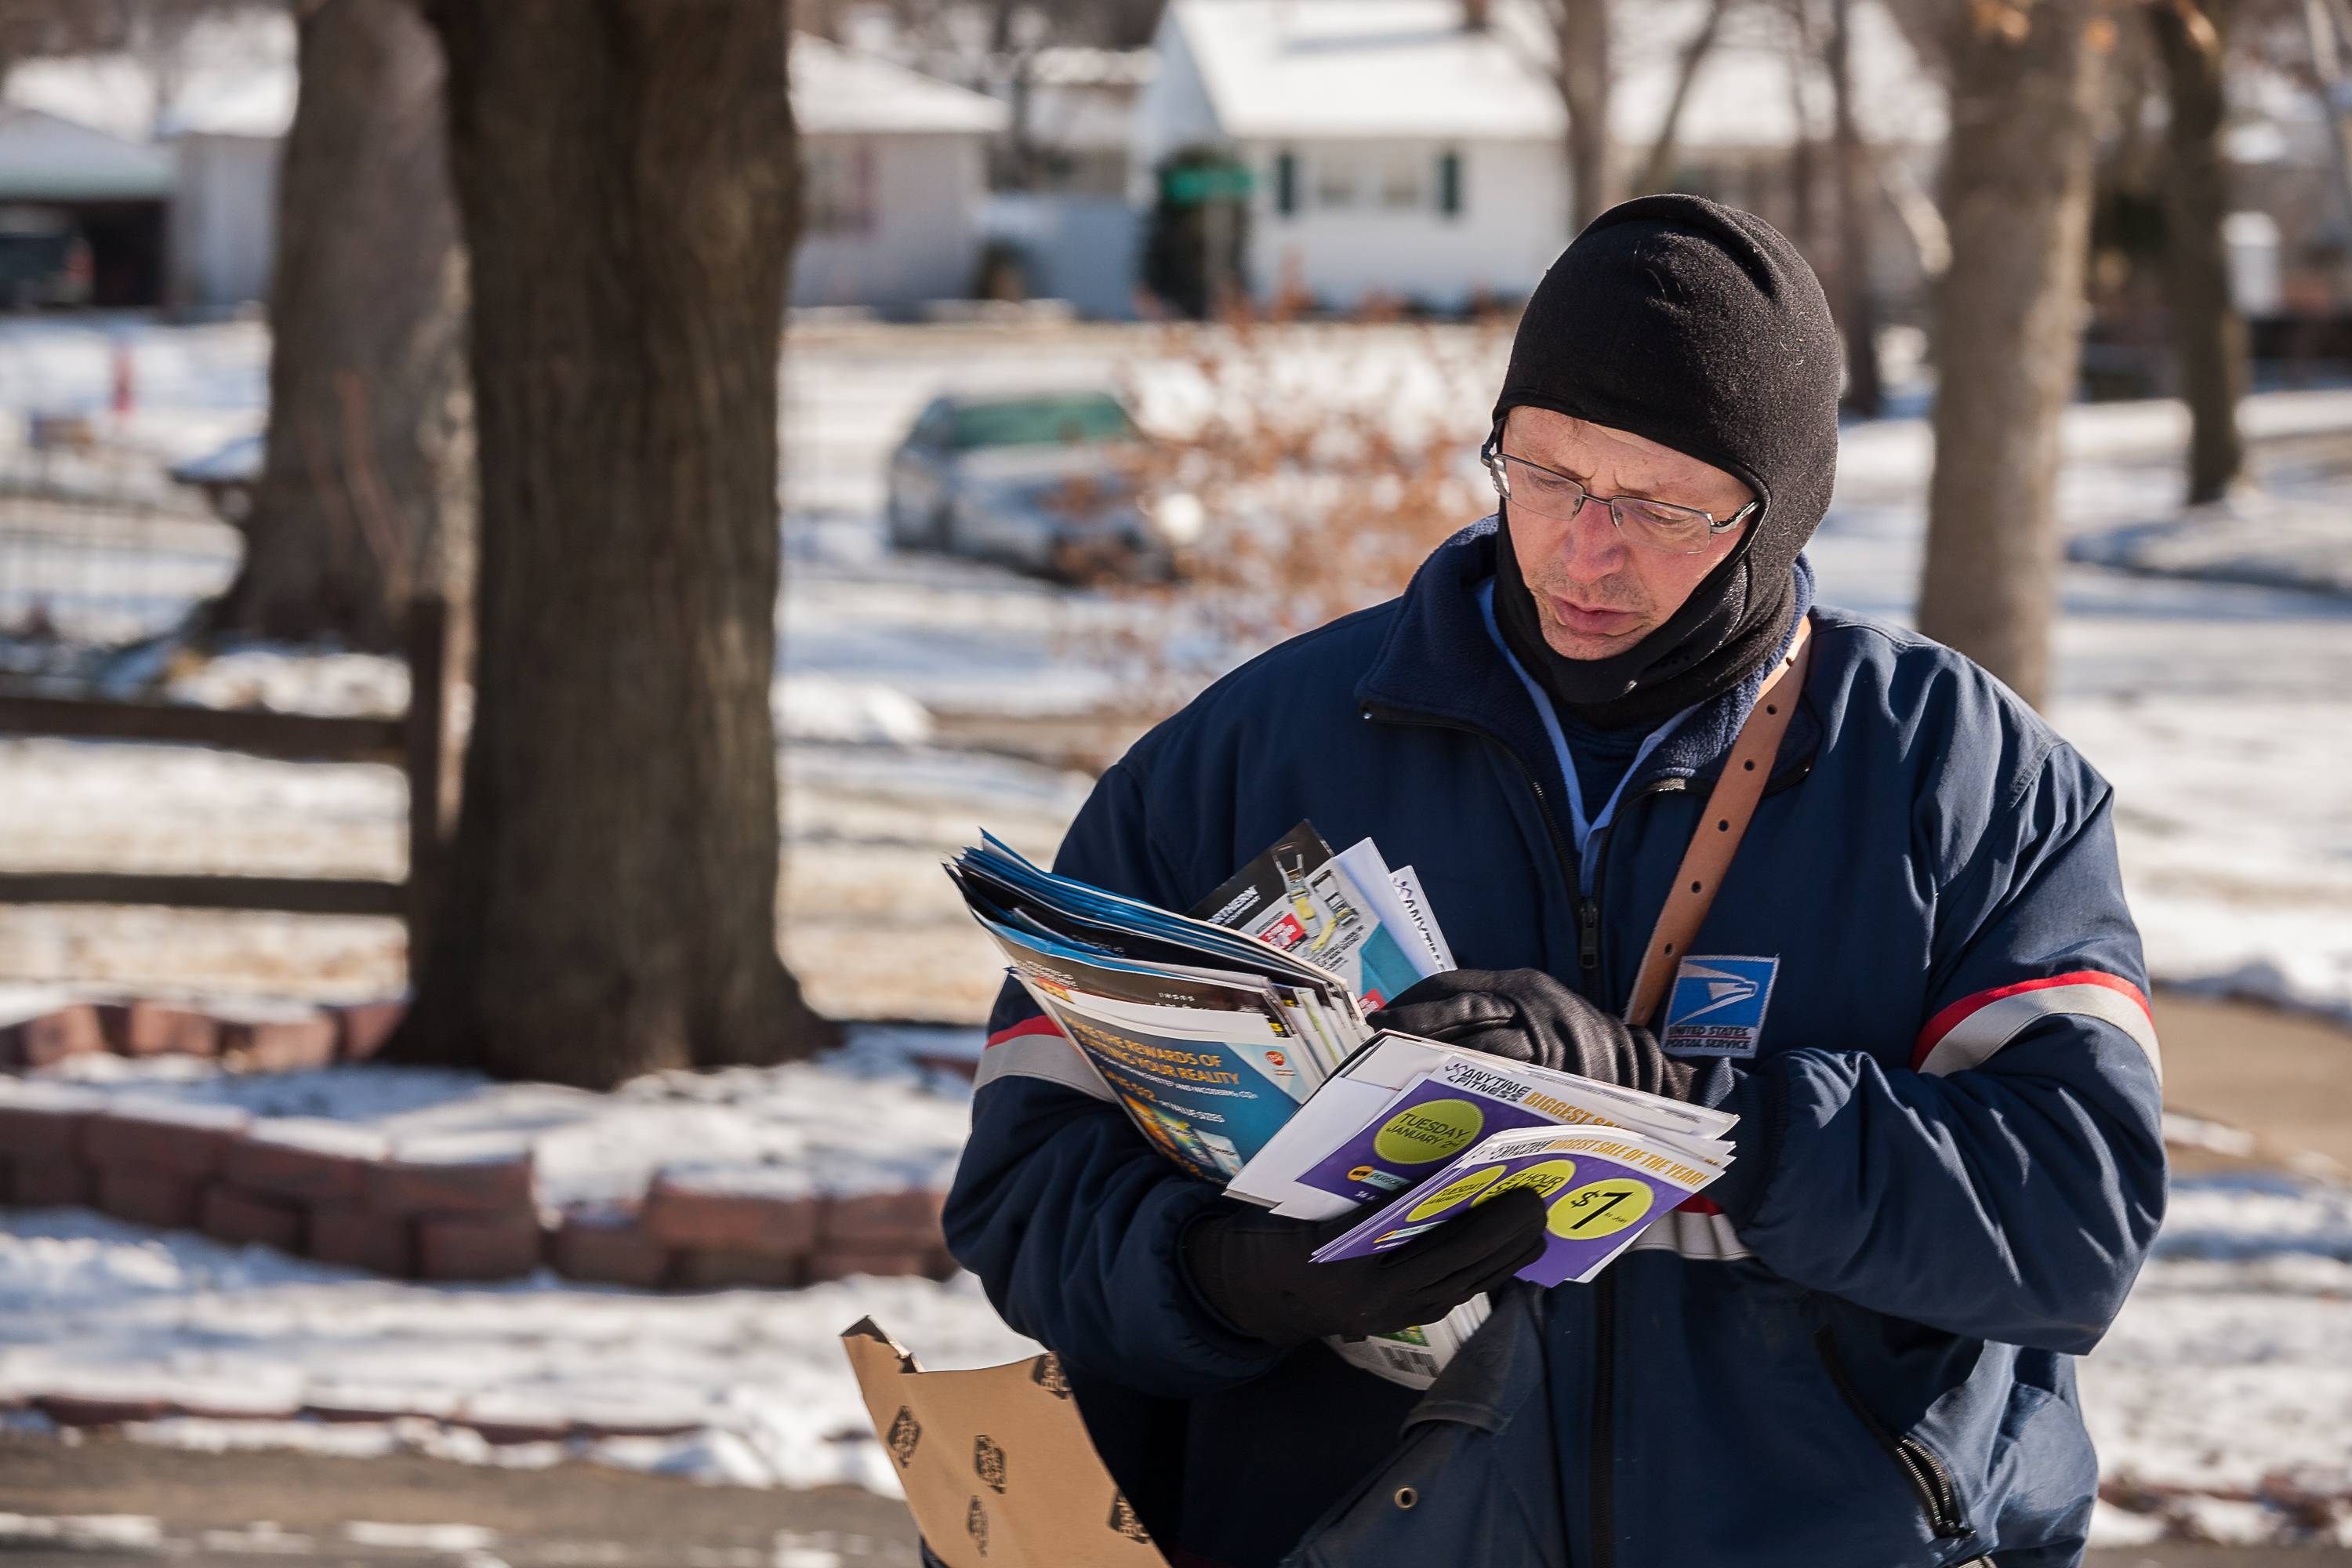 U.S. Postal Service letter carrier David Goulding delivers the mail during the holiday season.